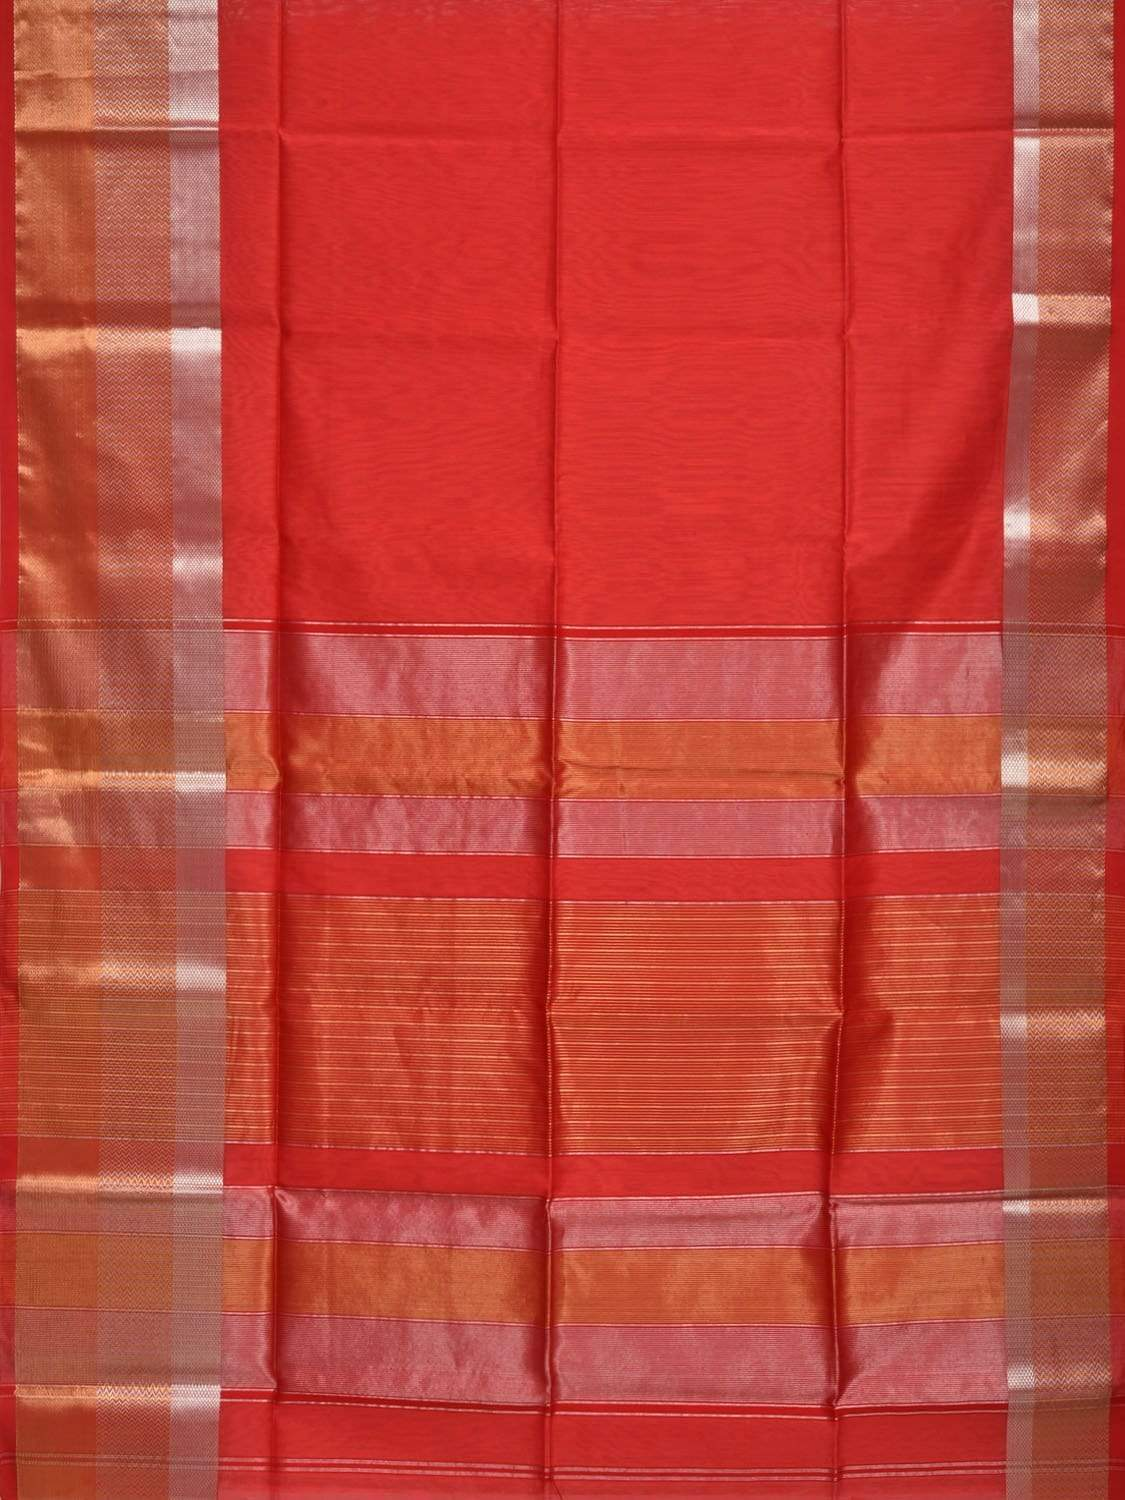 Red Maheshwari Cotton Silk Handloom Plain Saree with One Side Big Border Design m0115